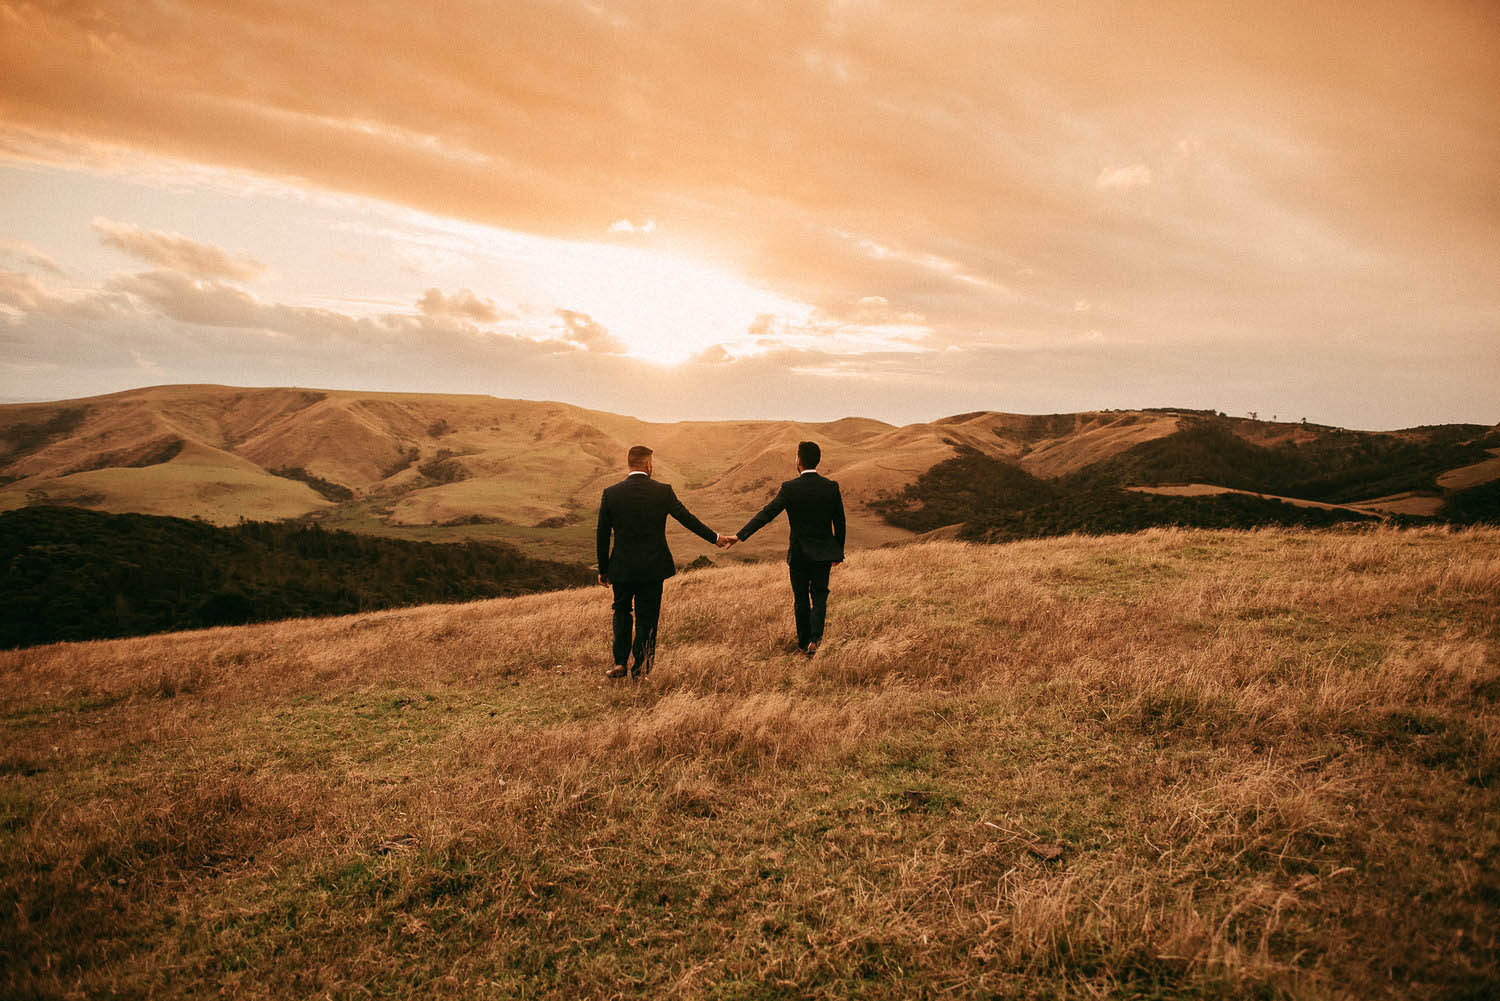 Two grooms walk together at sunset